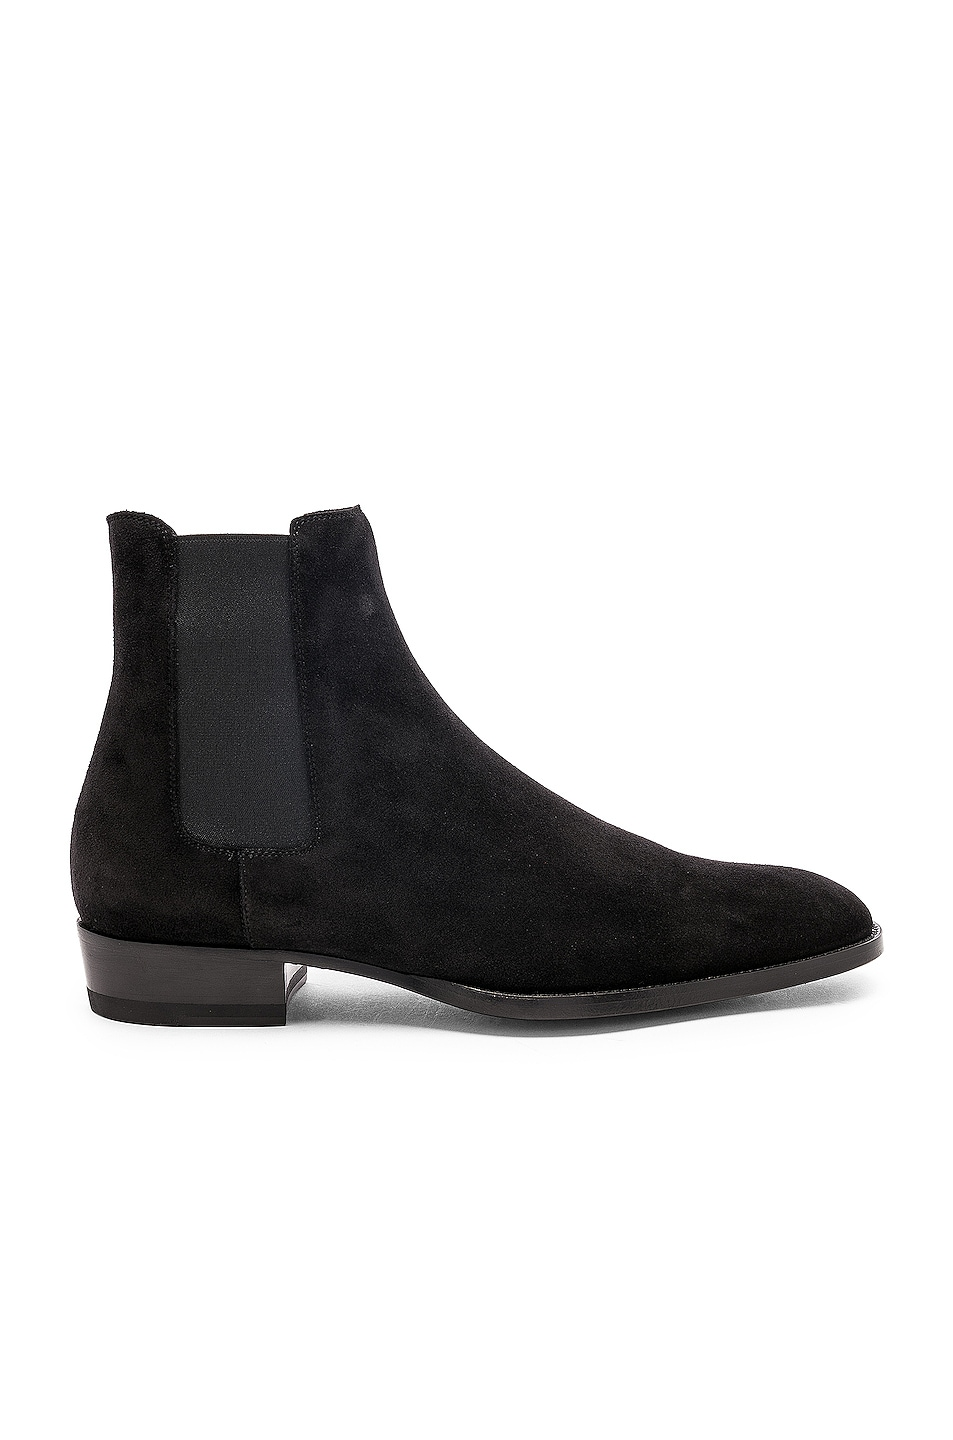 Image 1 of Saint Laurent Suede Wyatt 30 Chelsea Boots in Black